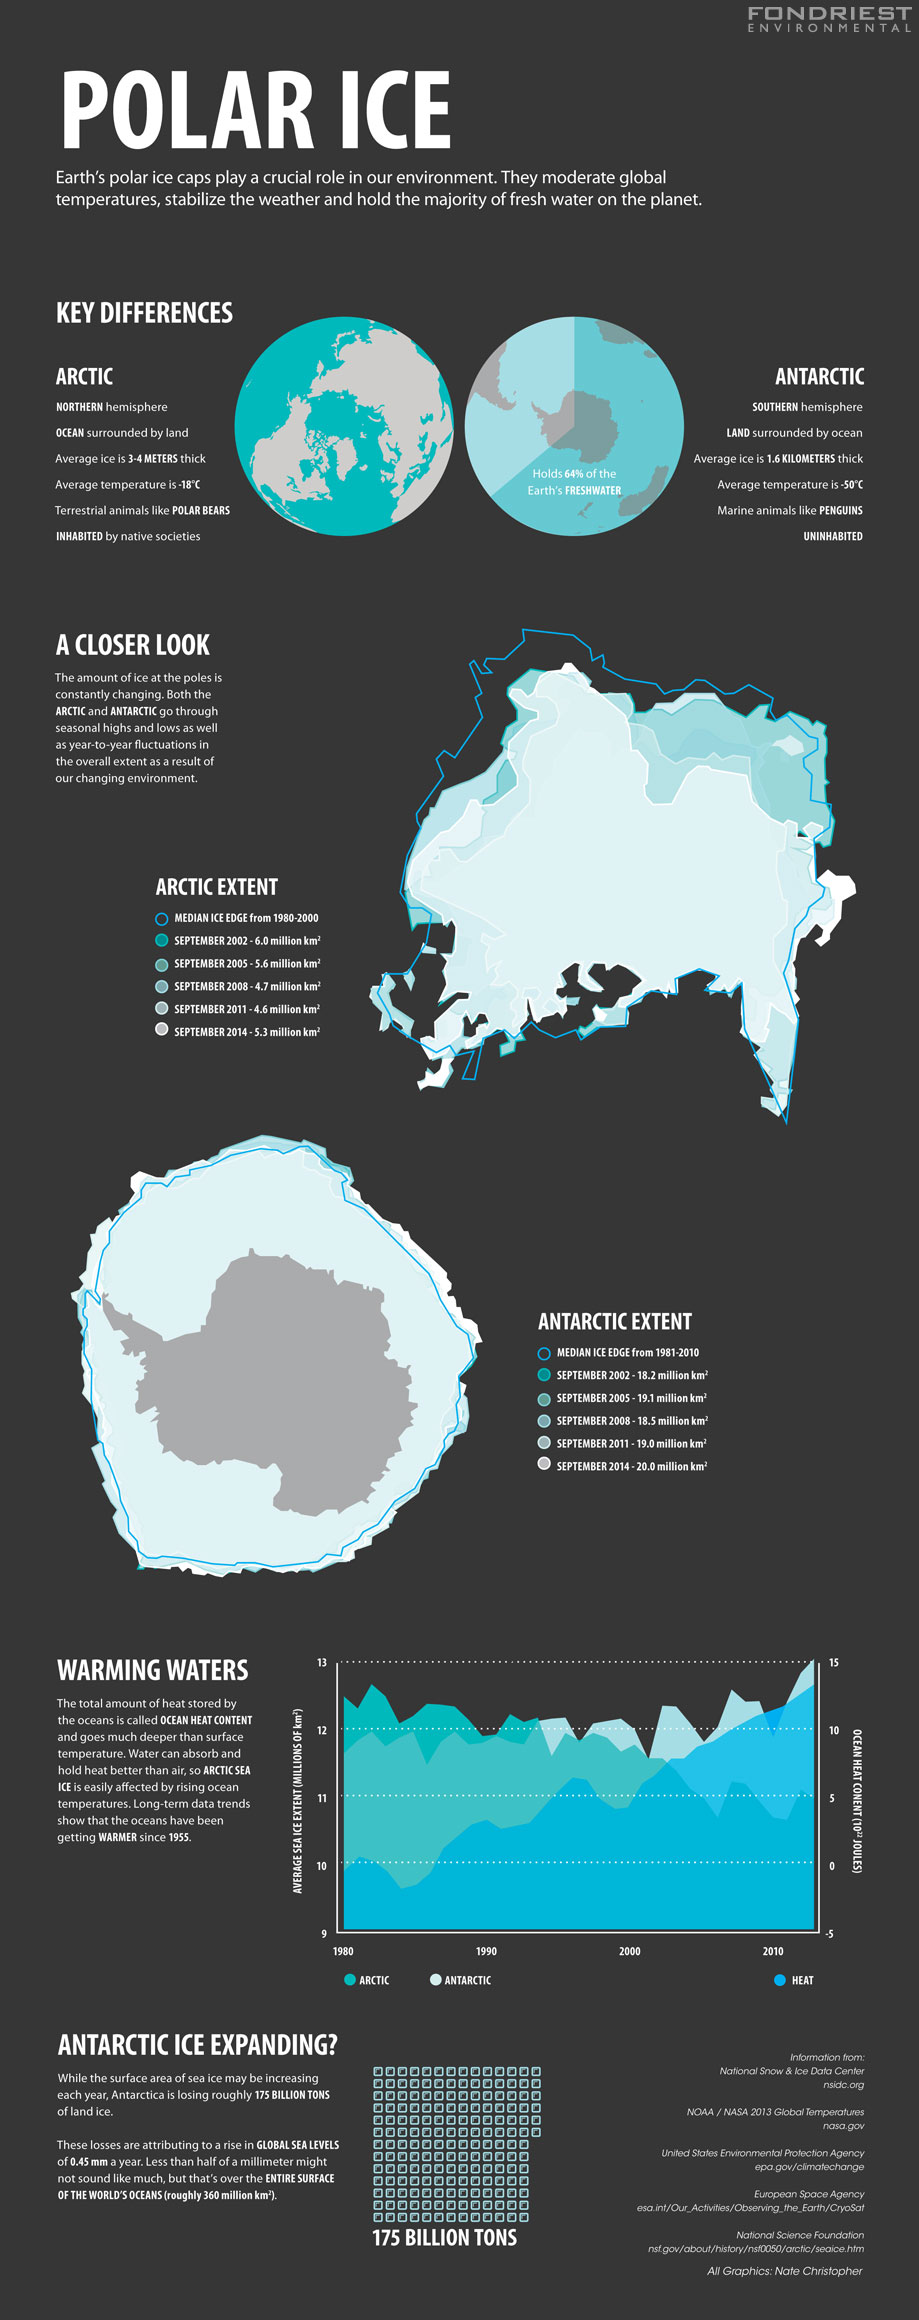 Polar Ice infographic. (Credit: Nate Christopher / Fondriest Environmental)